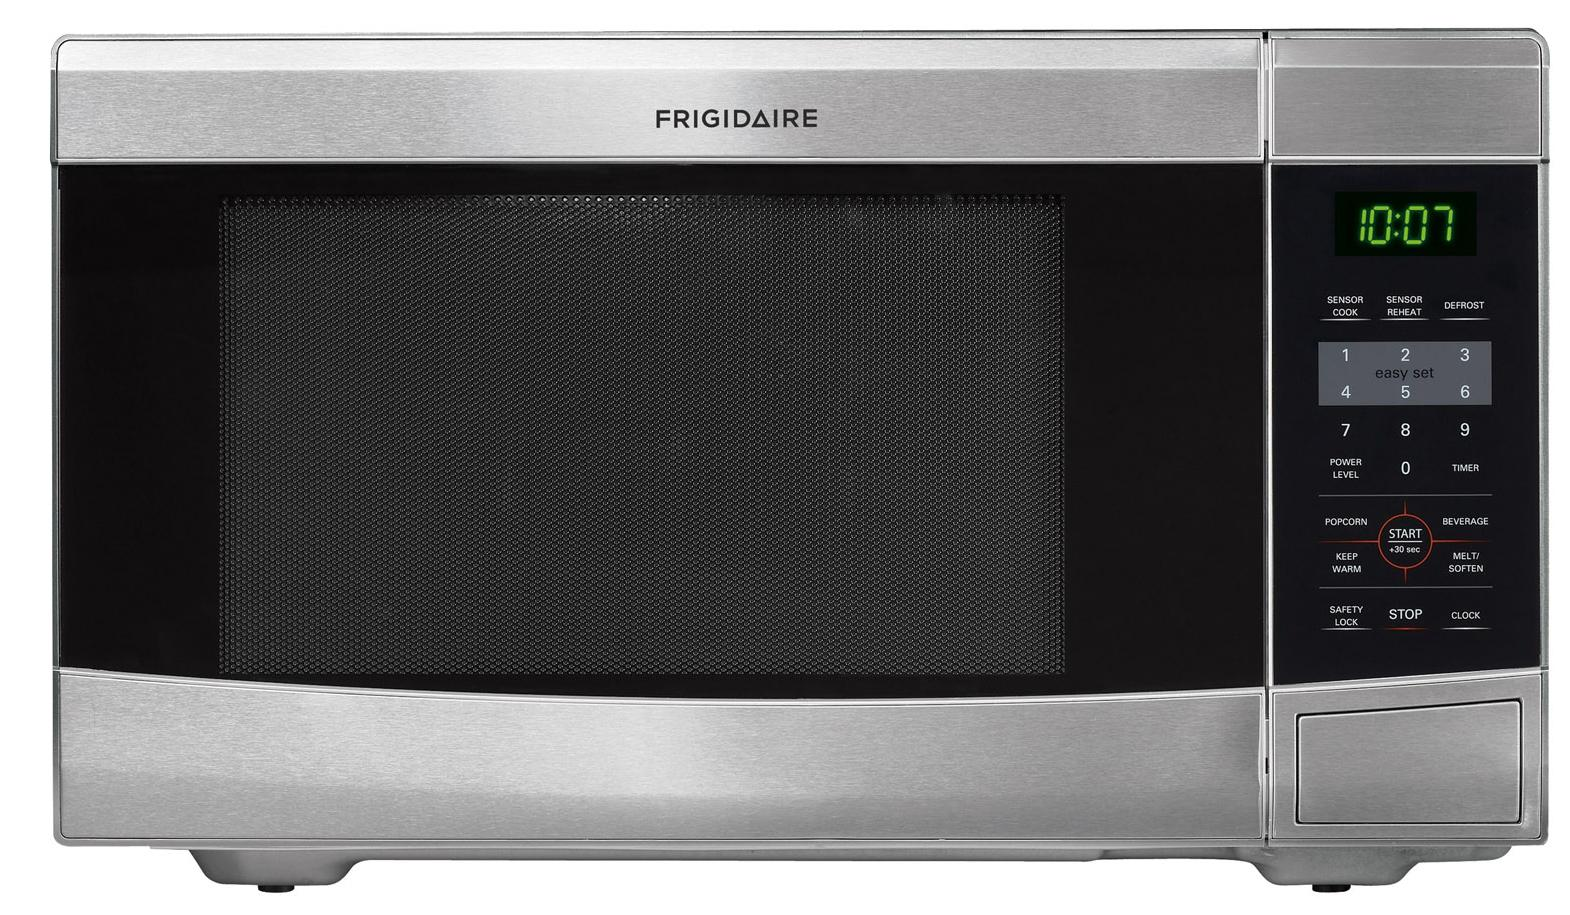 Frigidaire Microwaves 1.1 Cu. Ft. Countertop Microwave - Item Number: FFCM1134LS